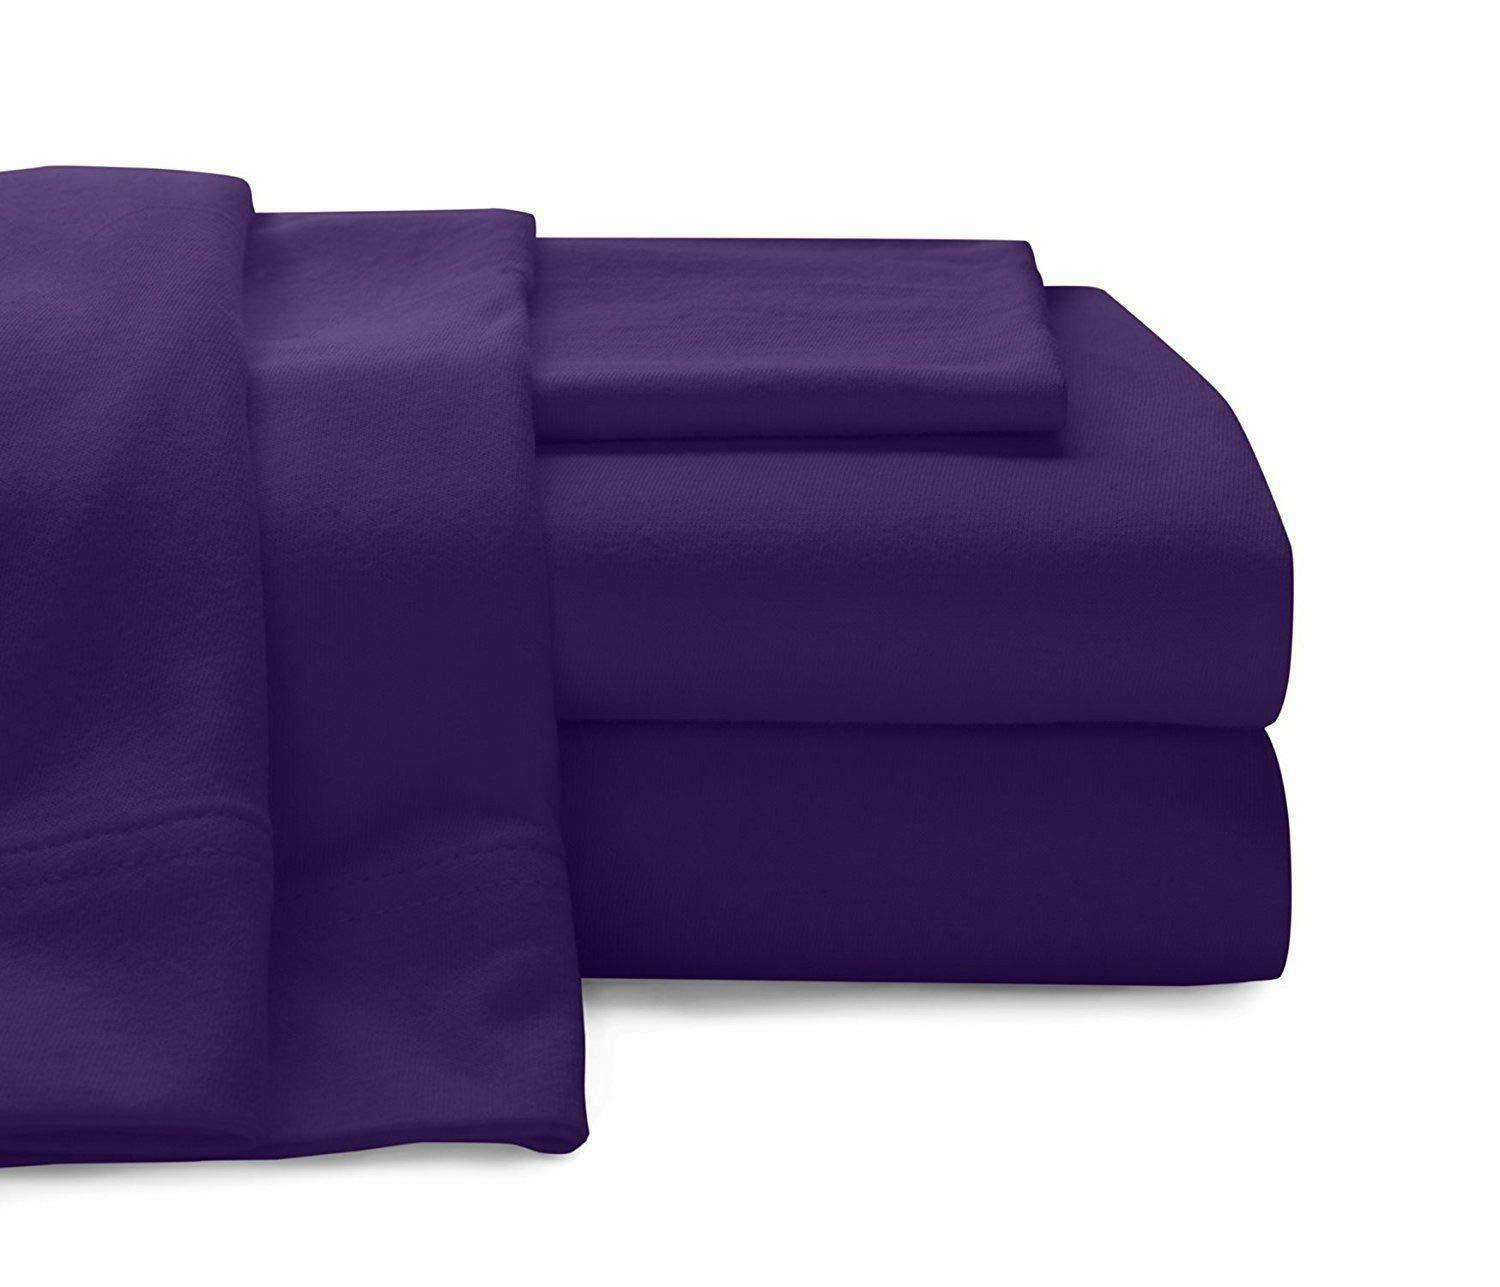 1000 Thread Count Egyptian Cotton USA-Bedding Items Select Size Purple Solid